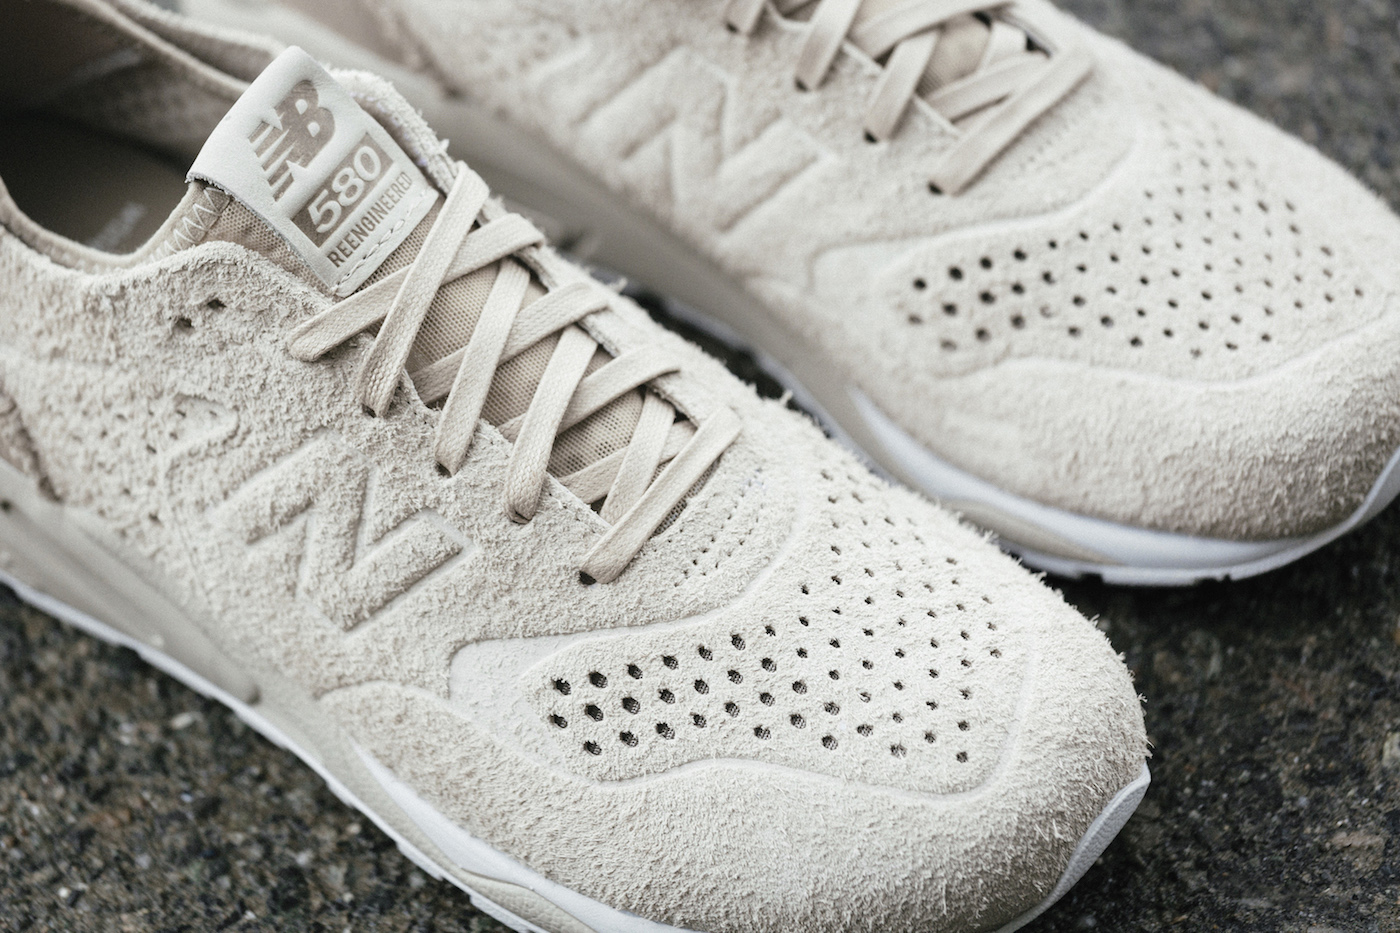 wings+horns x New Balance 580 Deconstructed-3